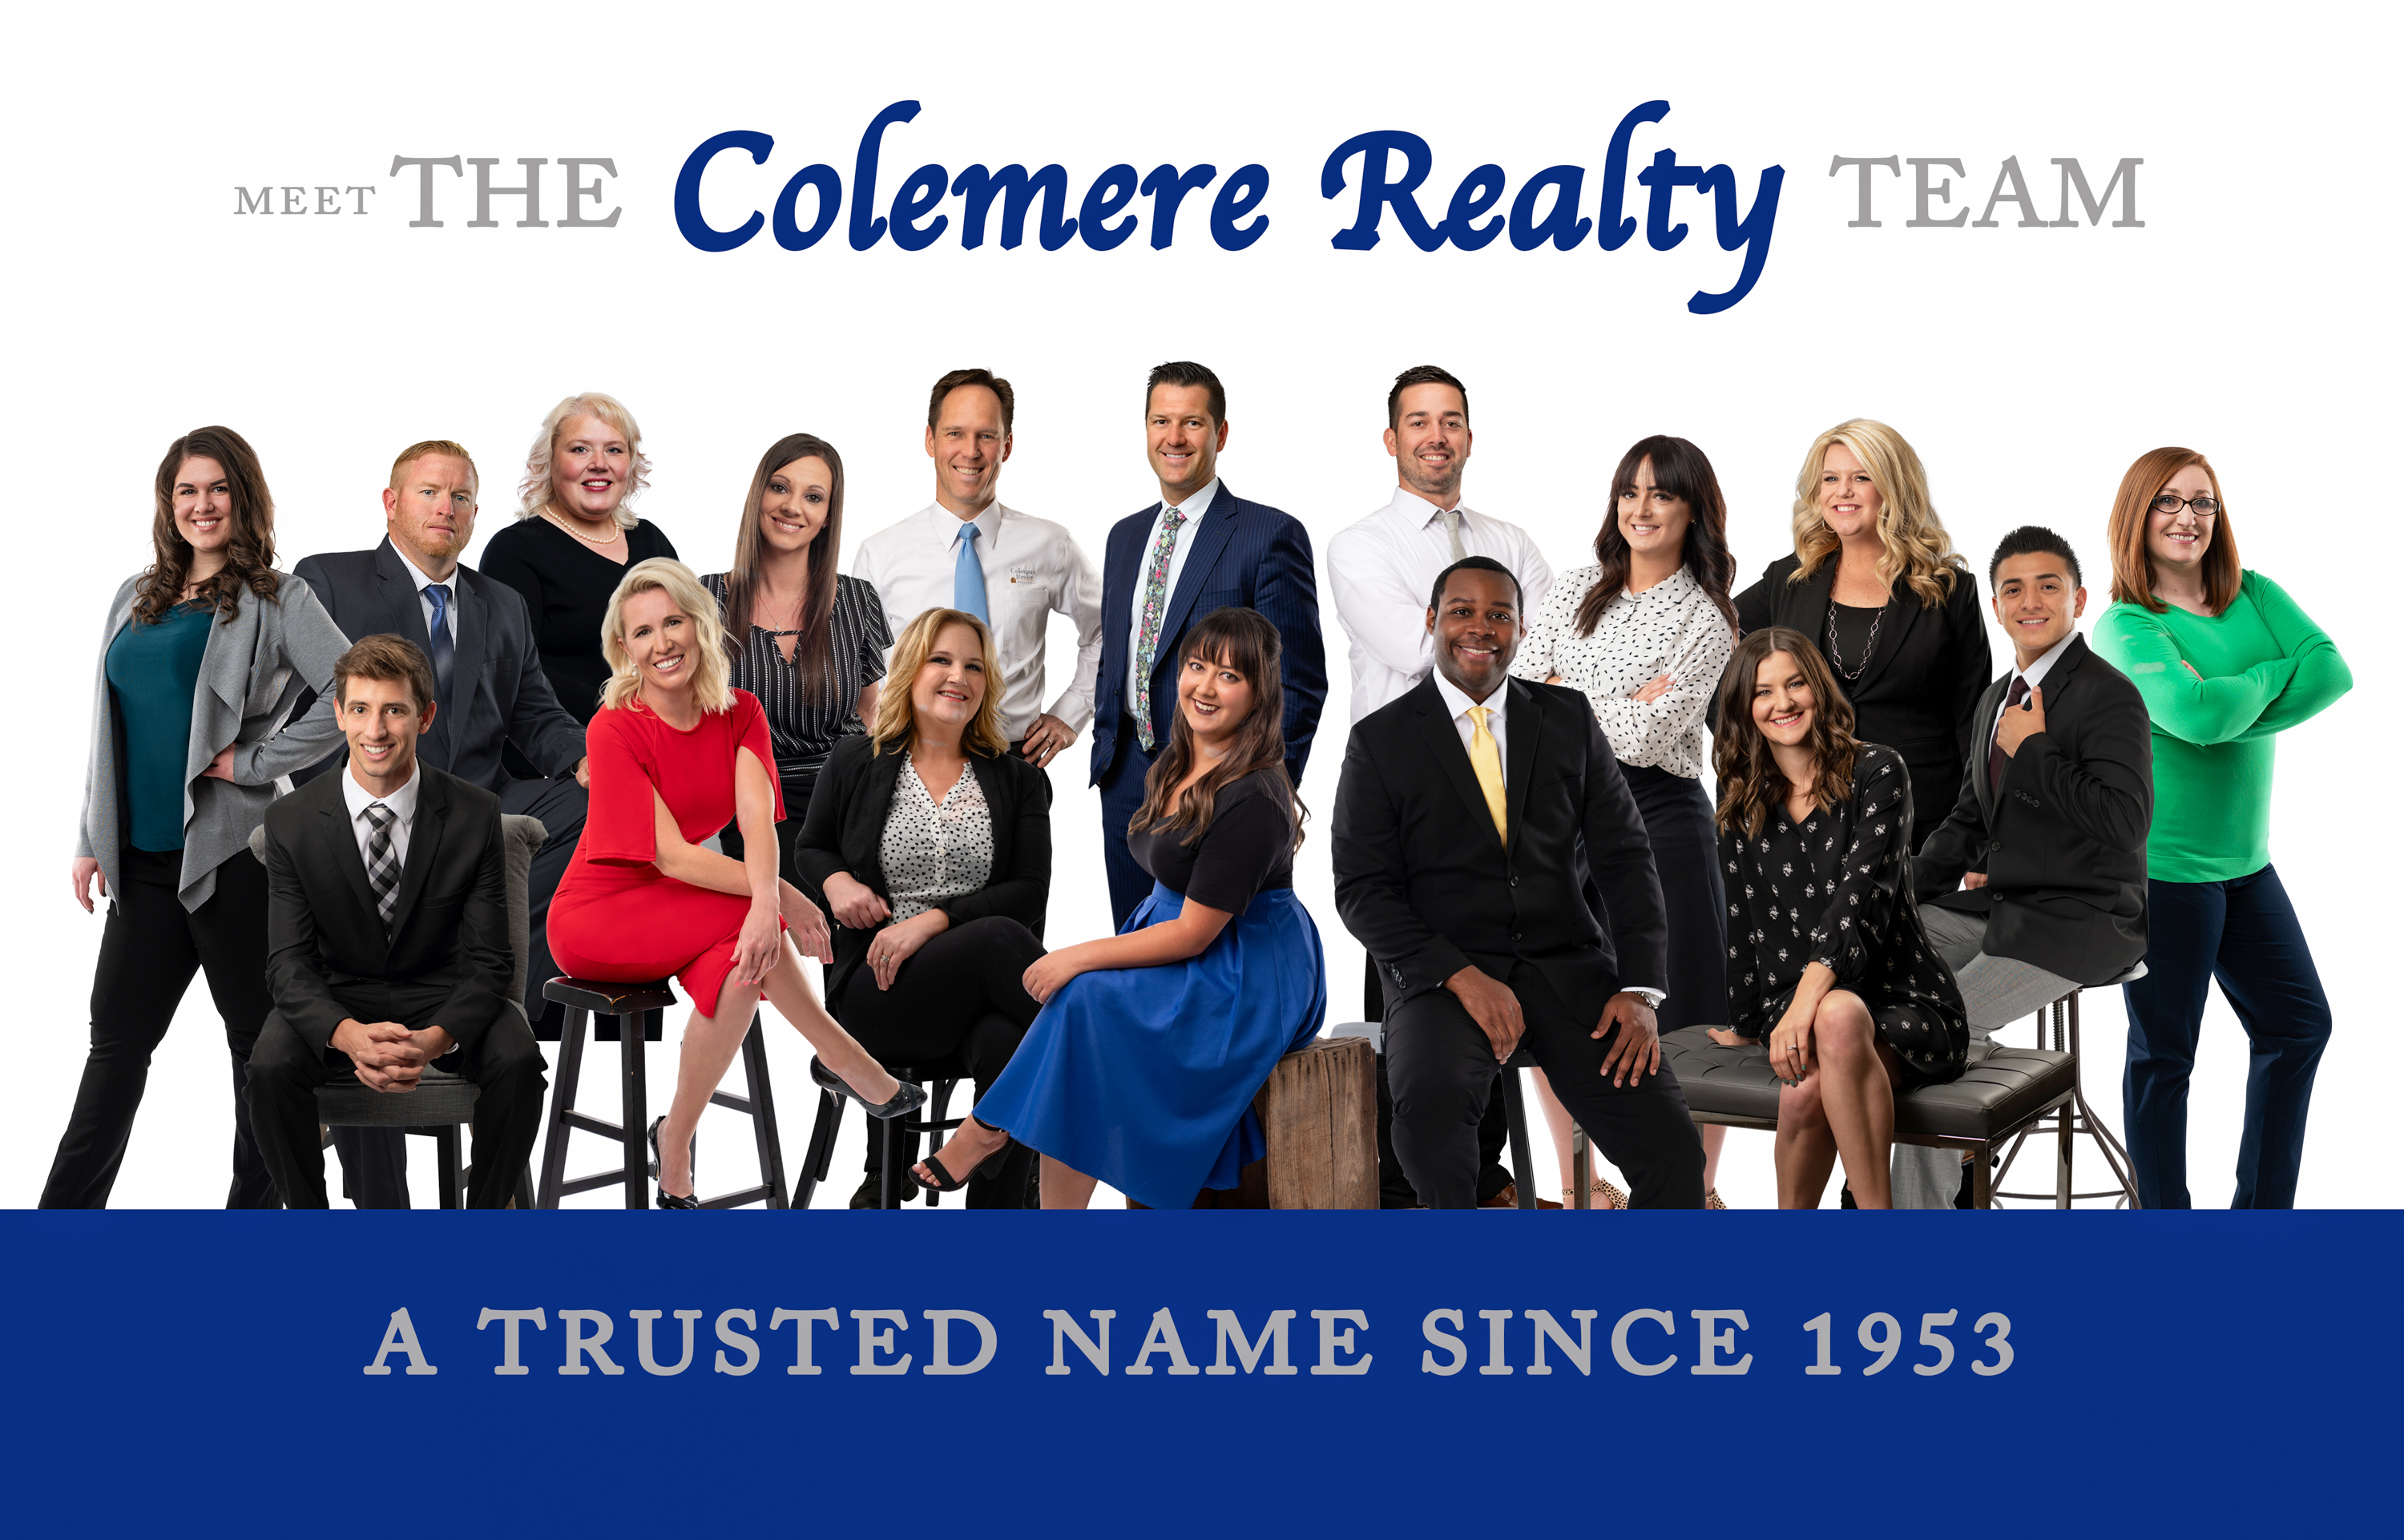 The Colemere Realty Team